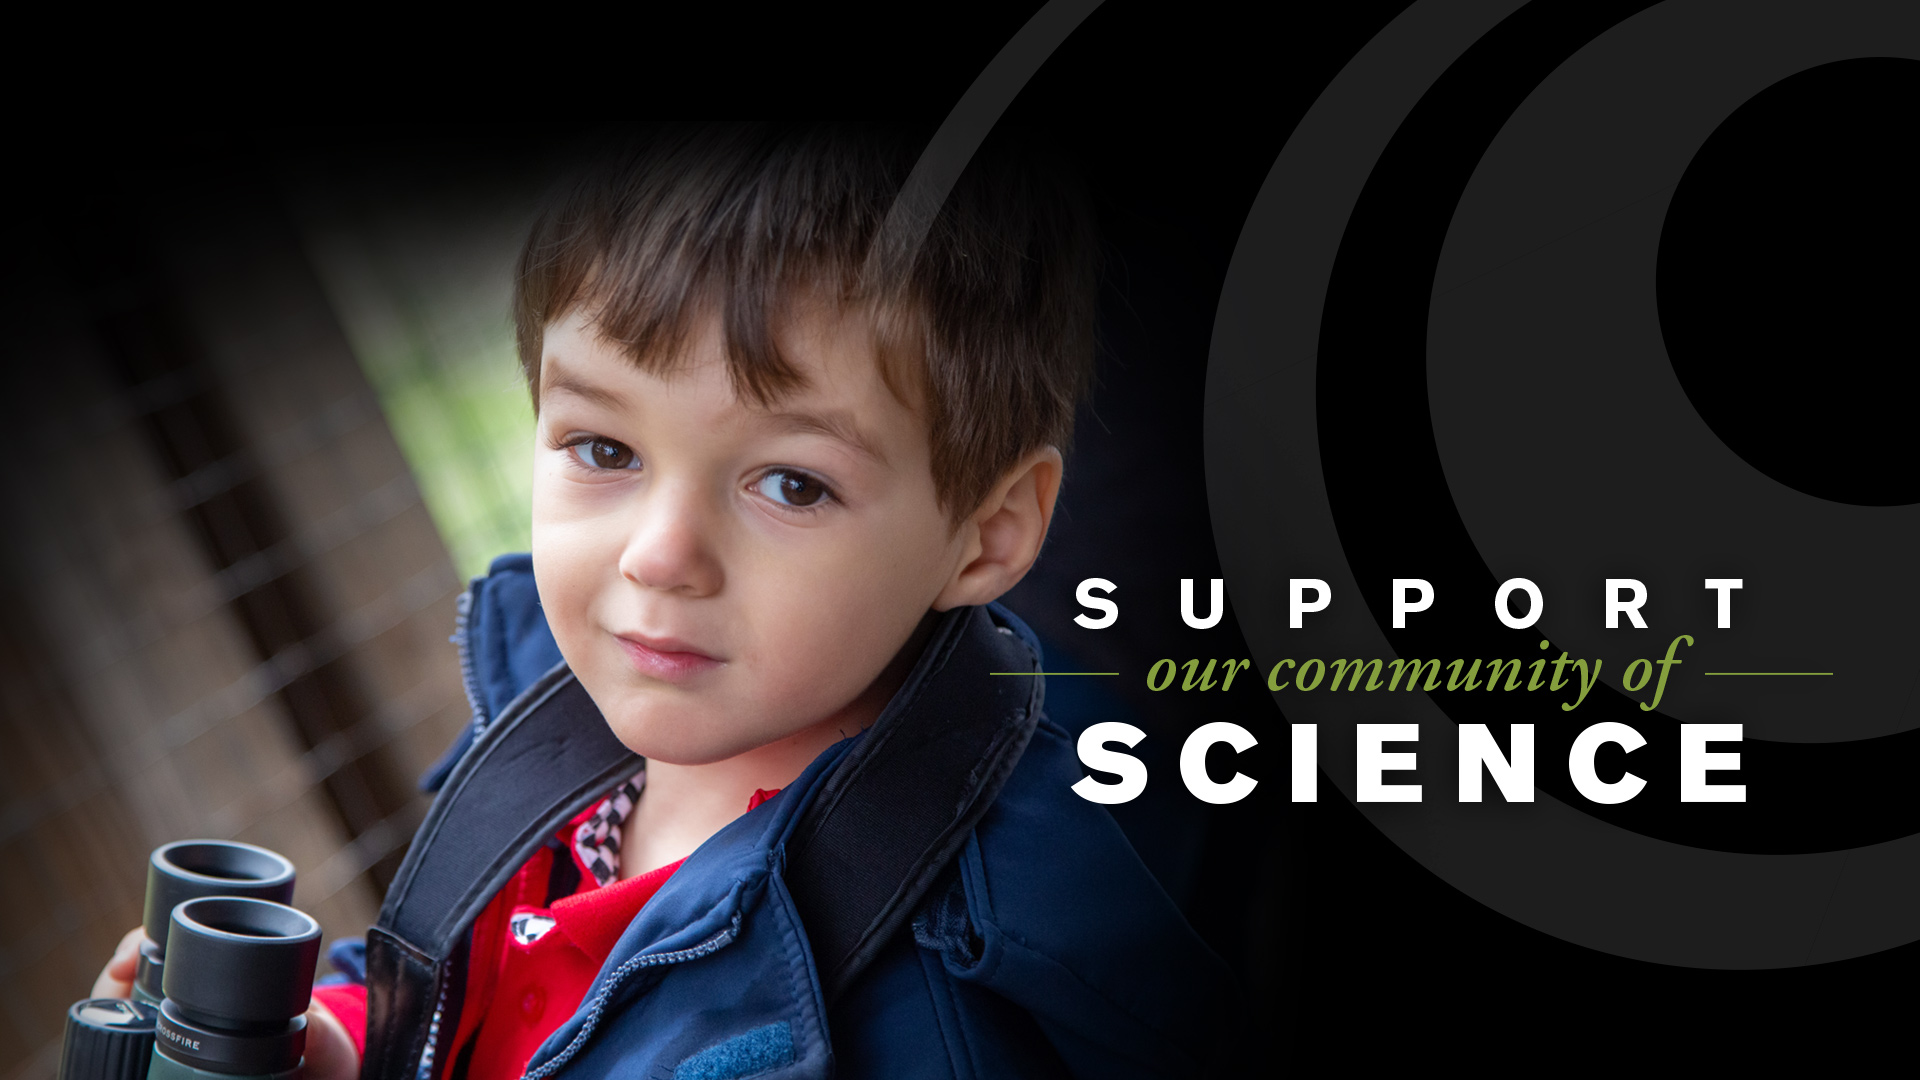 Support our community of Science